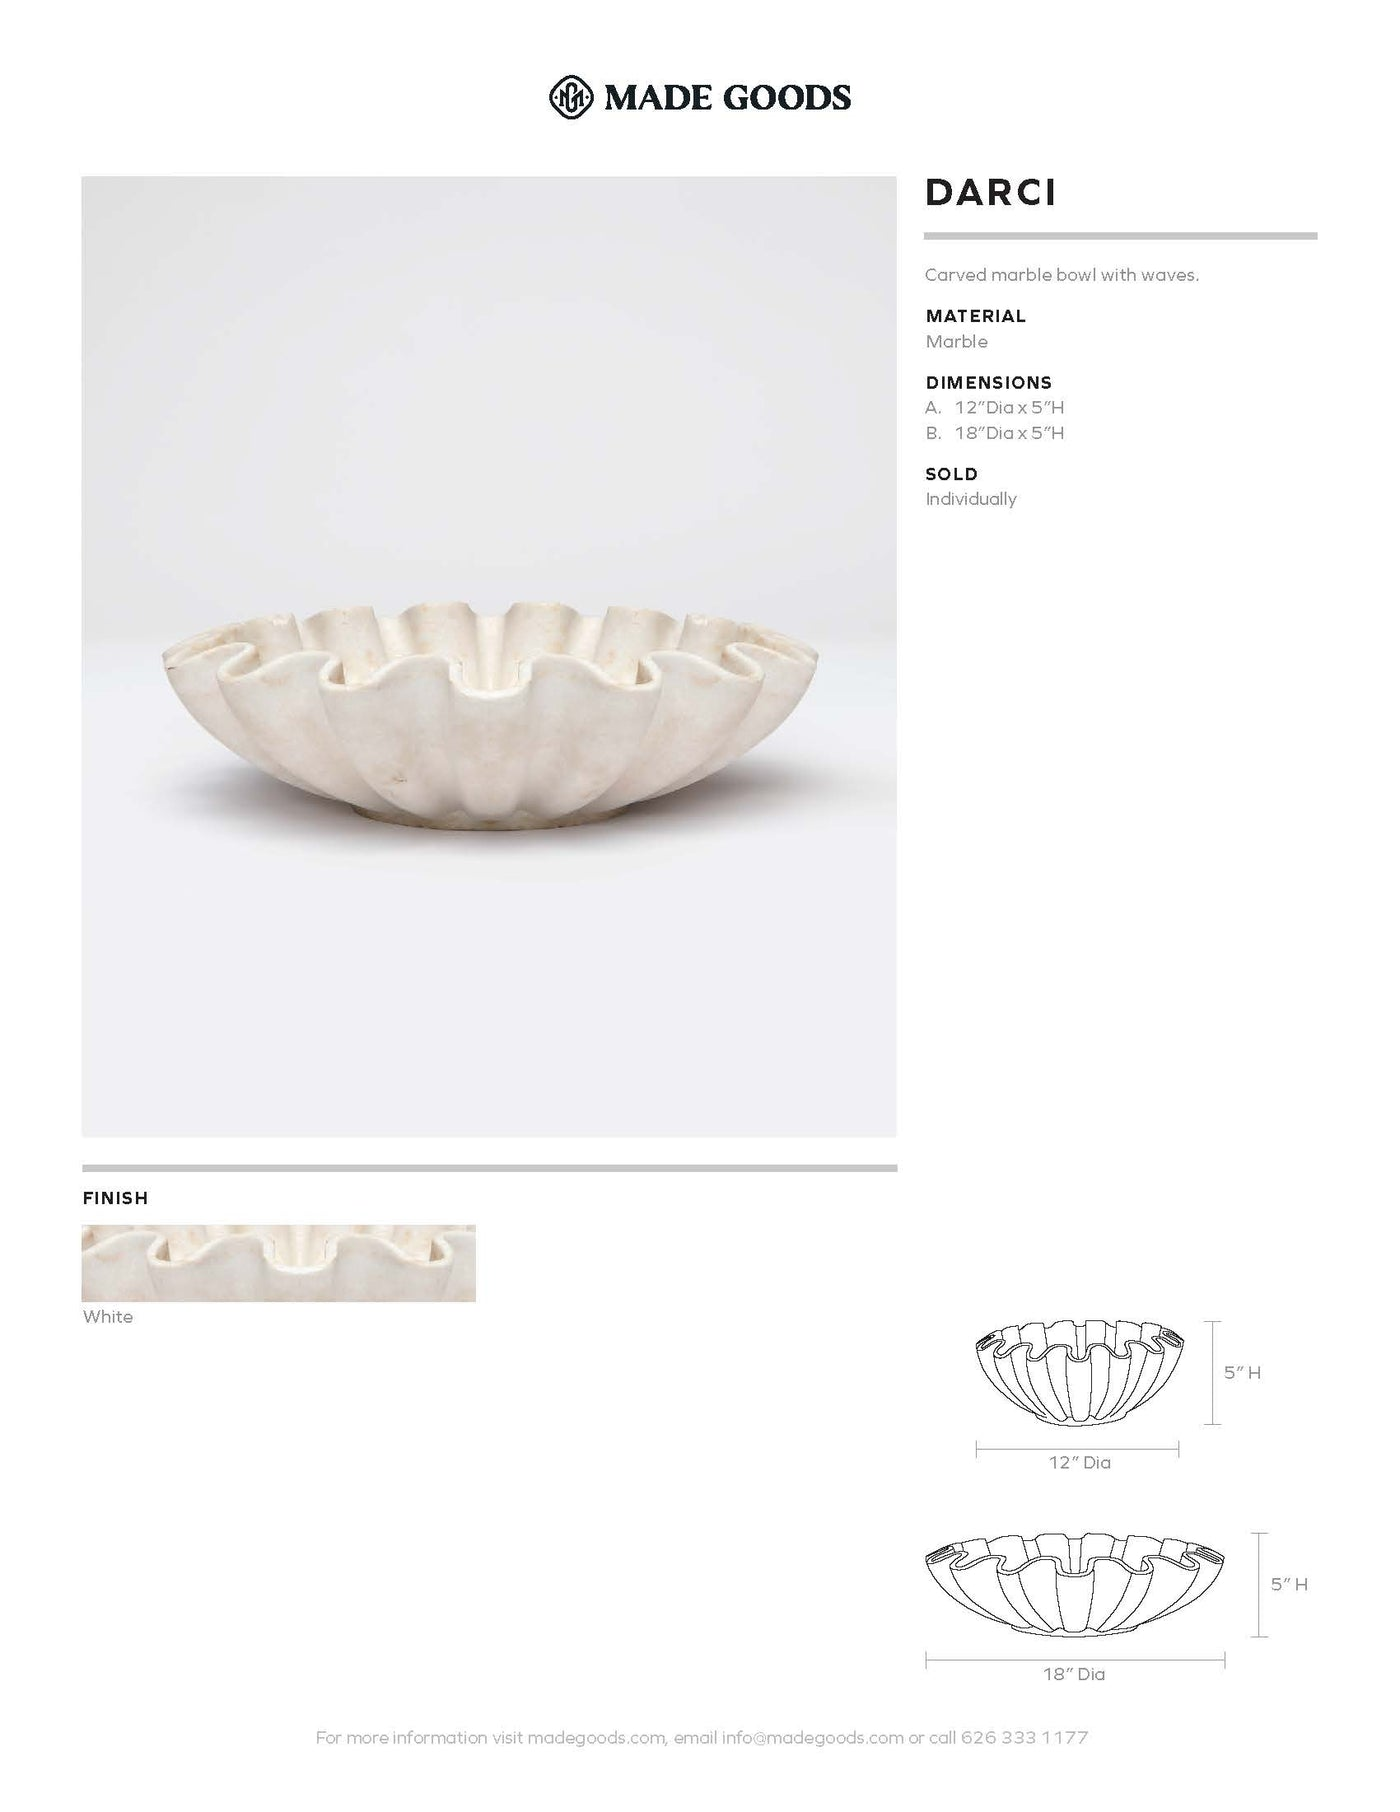 made goods darci marble bowl white tearsheet